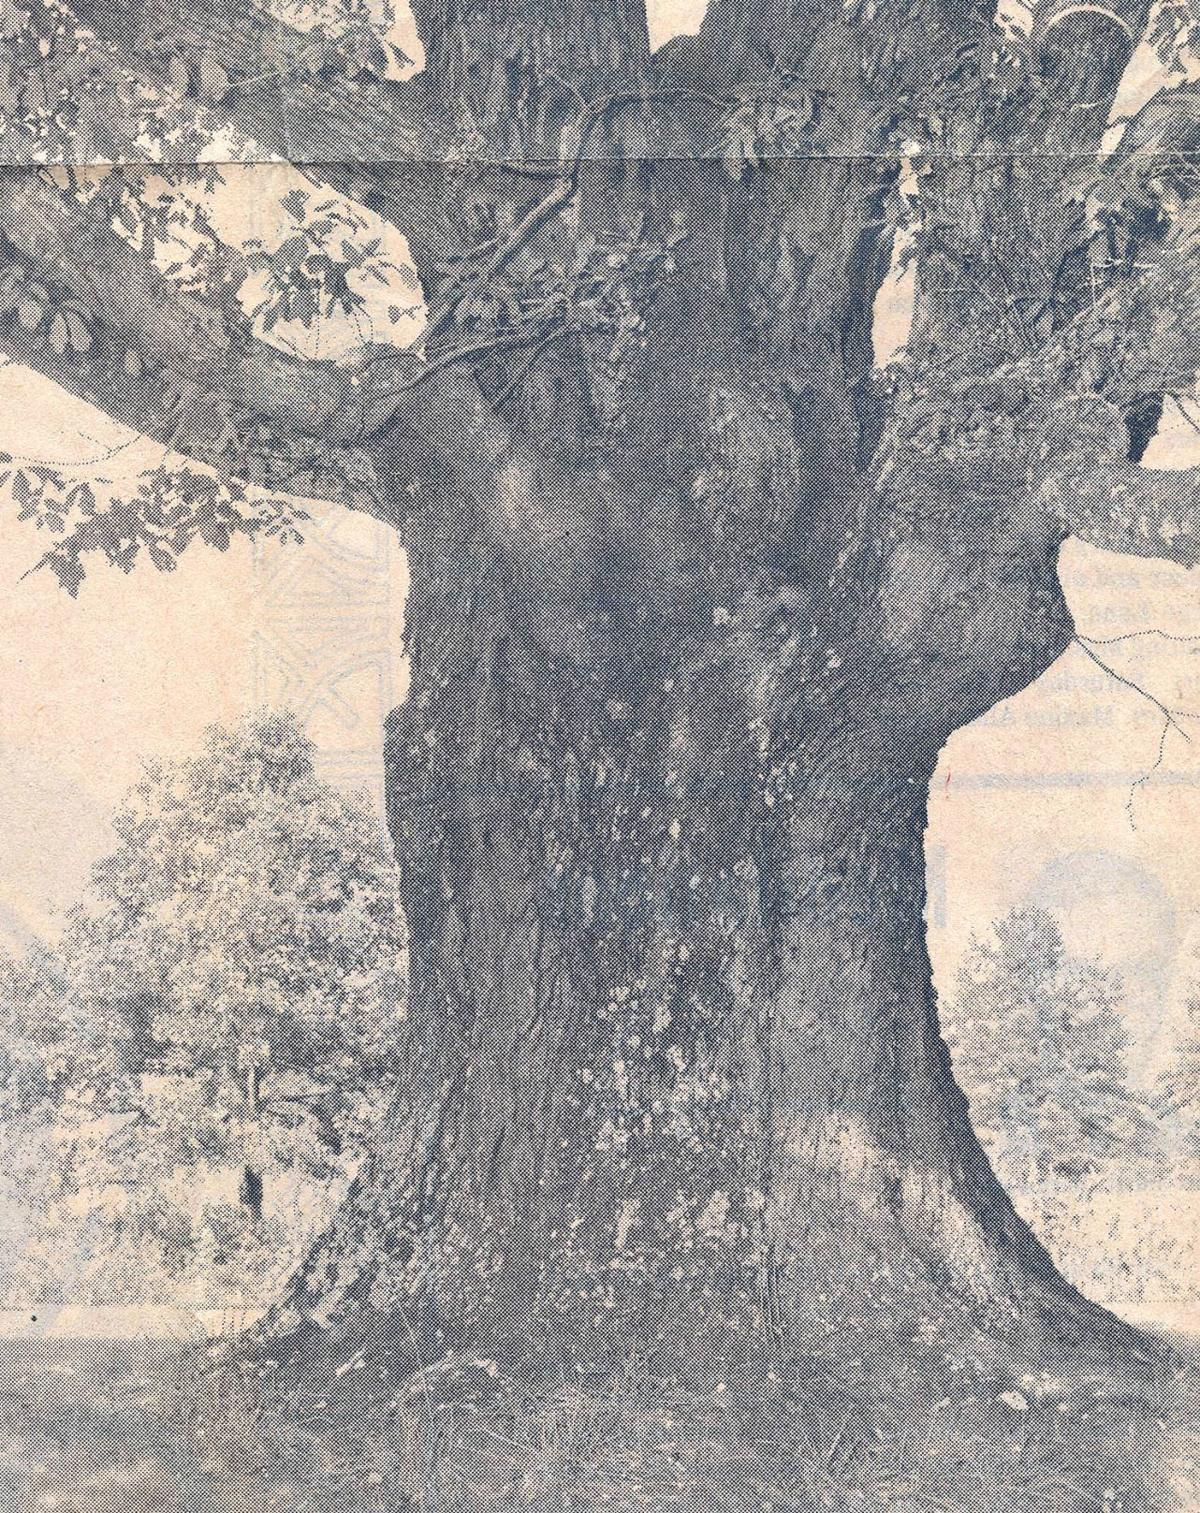 Centuries old oak tree witnessed all of Cocke County's history